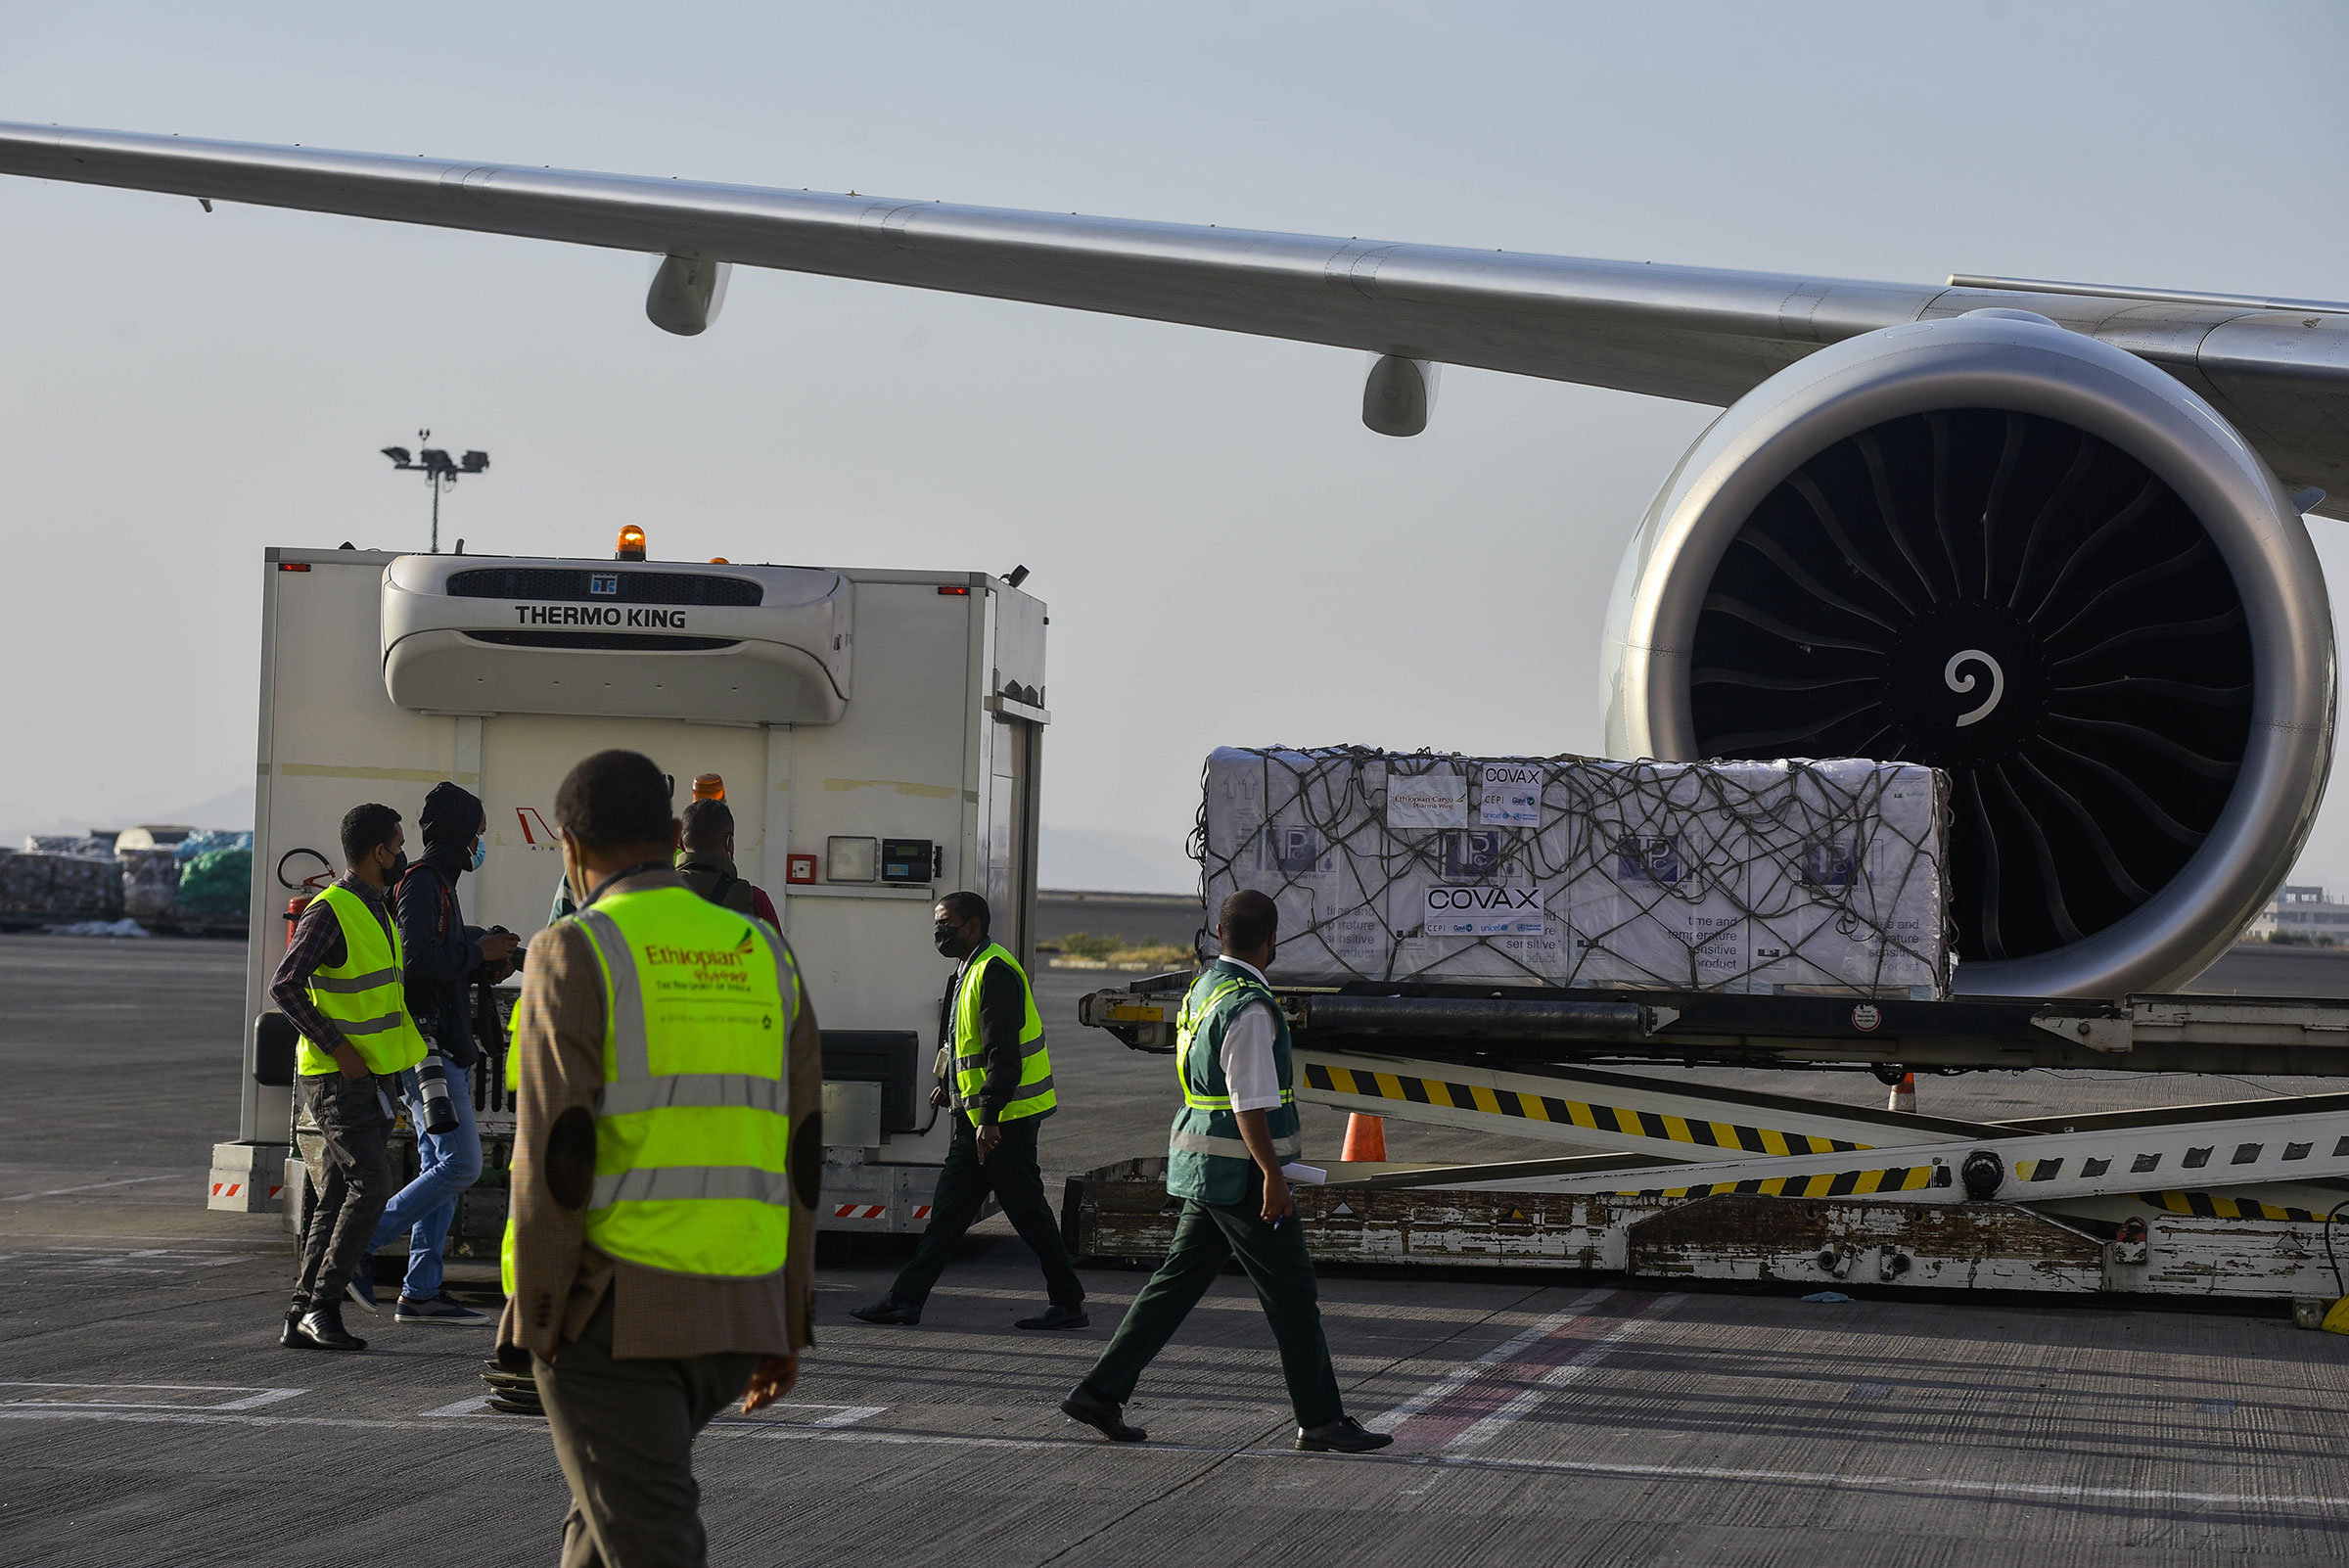 COVID-19 vaccines from COVAX arrive at Bole international airport in Addis Ababa, Ethiopia, on March 7, 2021.